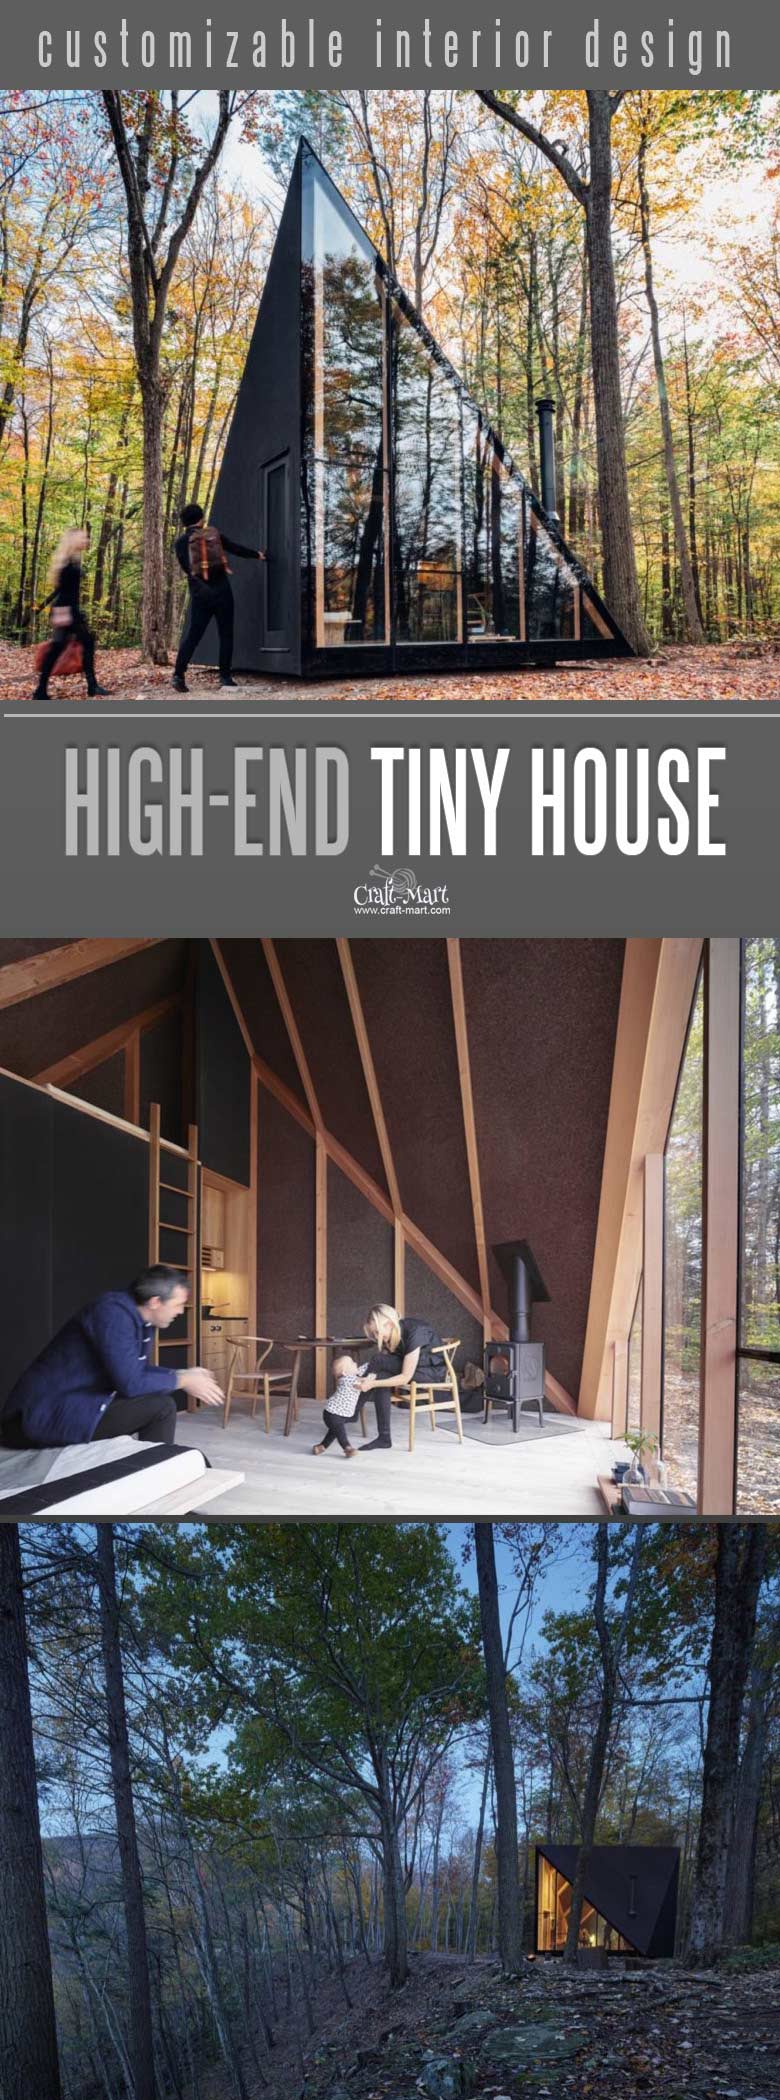 Look at this absolutely awesome High-end custom tiny house that you can afford! You can add custom features from most of the tiny home builders. Keep dreaming on or take an action and get one of these little affordable homes!#tinyhouseplans #tinyhome #tinyhouses #diywoodcrafts #diyproject #realestate #smallhouseplans